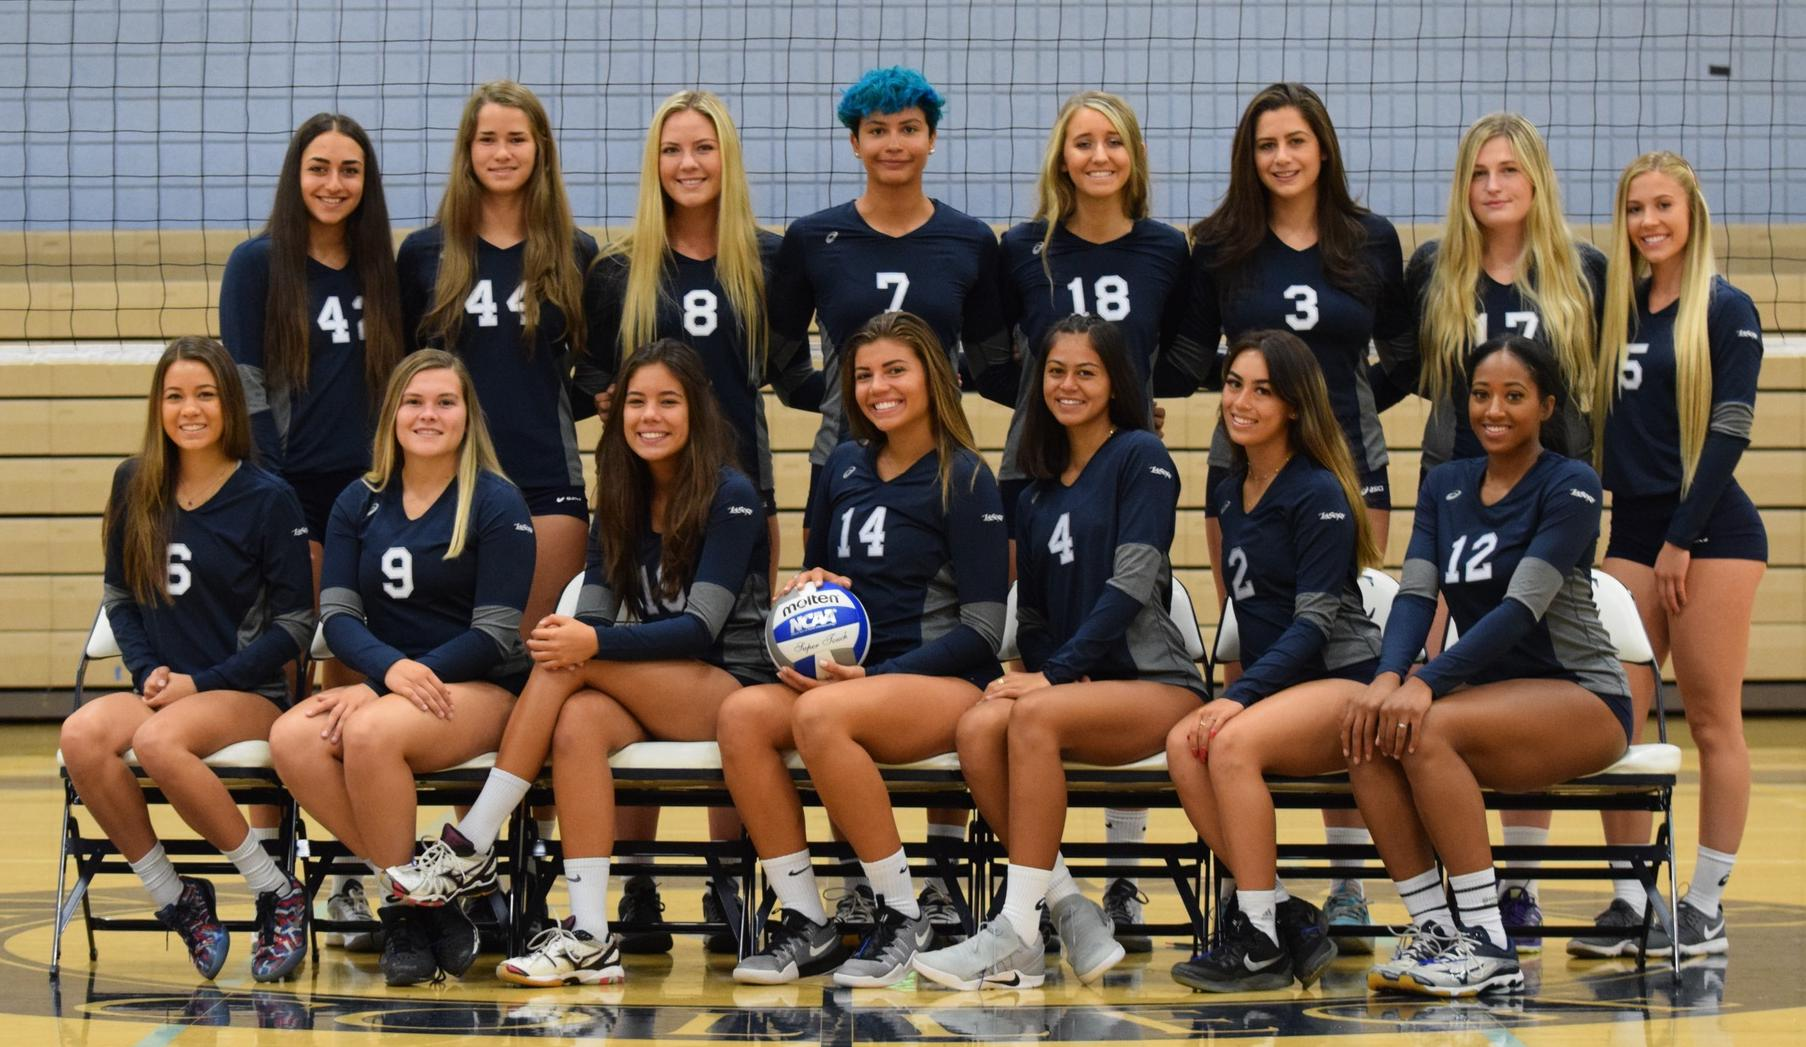 Women's volleyball team No. 2 in state in first poll of 2017